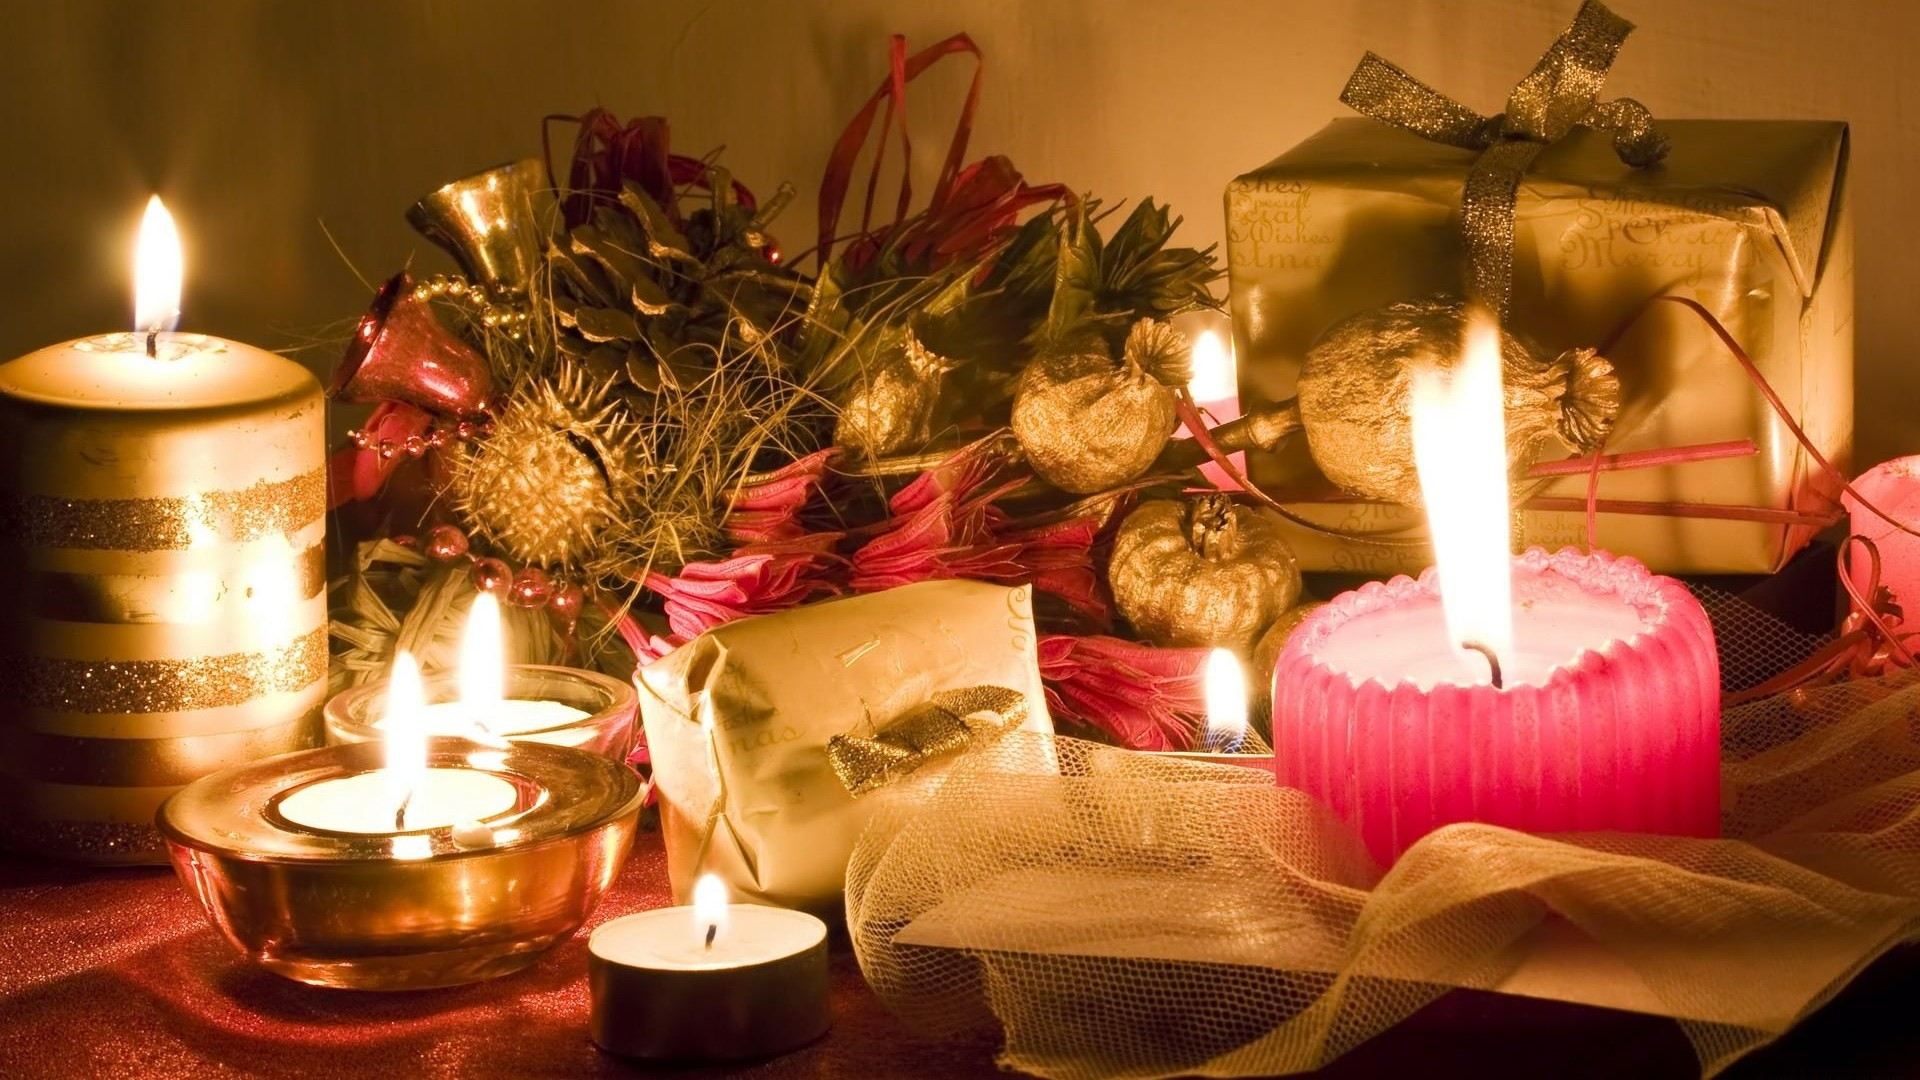 Res: 1920x1080, New Year Holiday Christmas Gifts Candles